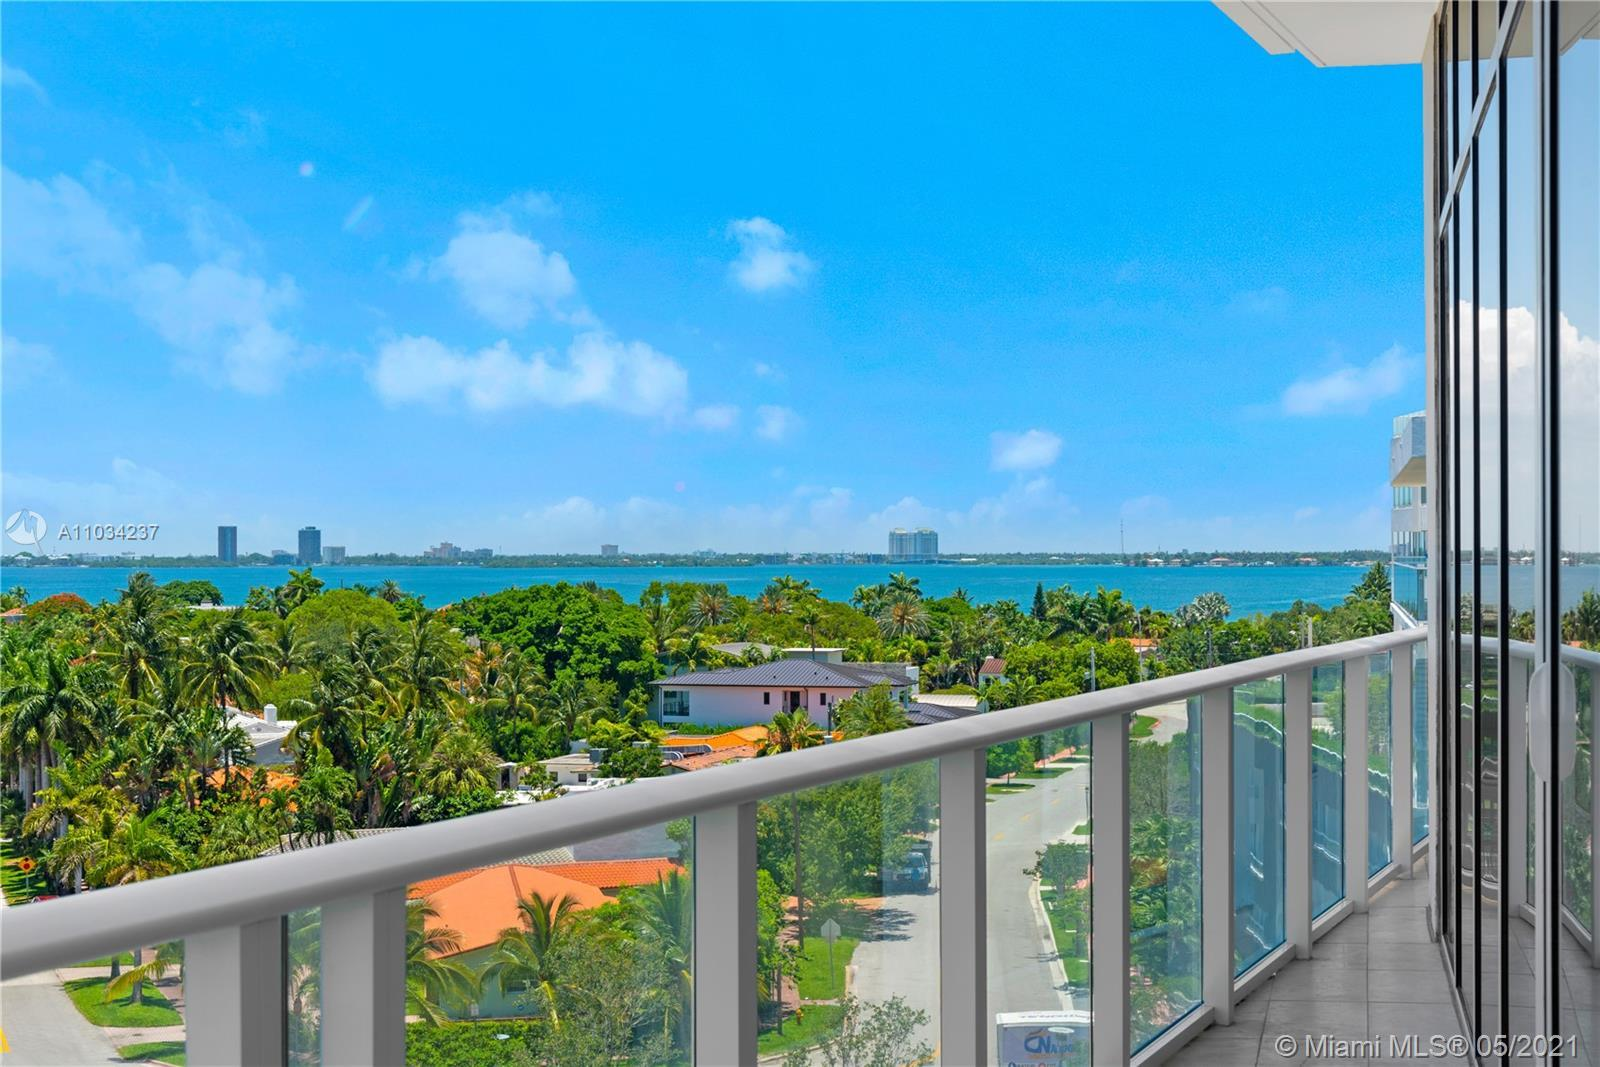 Residence 512 is one of the best lines at The Ritz-Carlton Residences, Miami Beach, showcasing floor